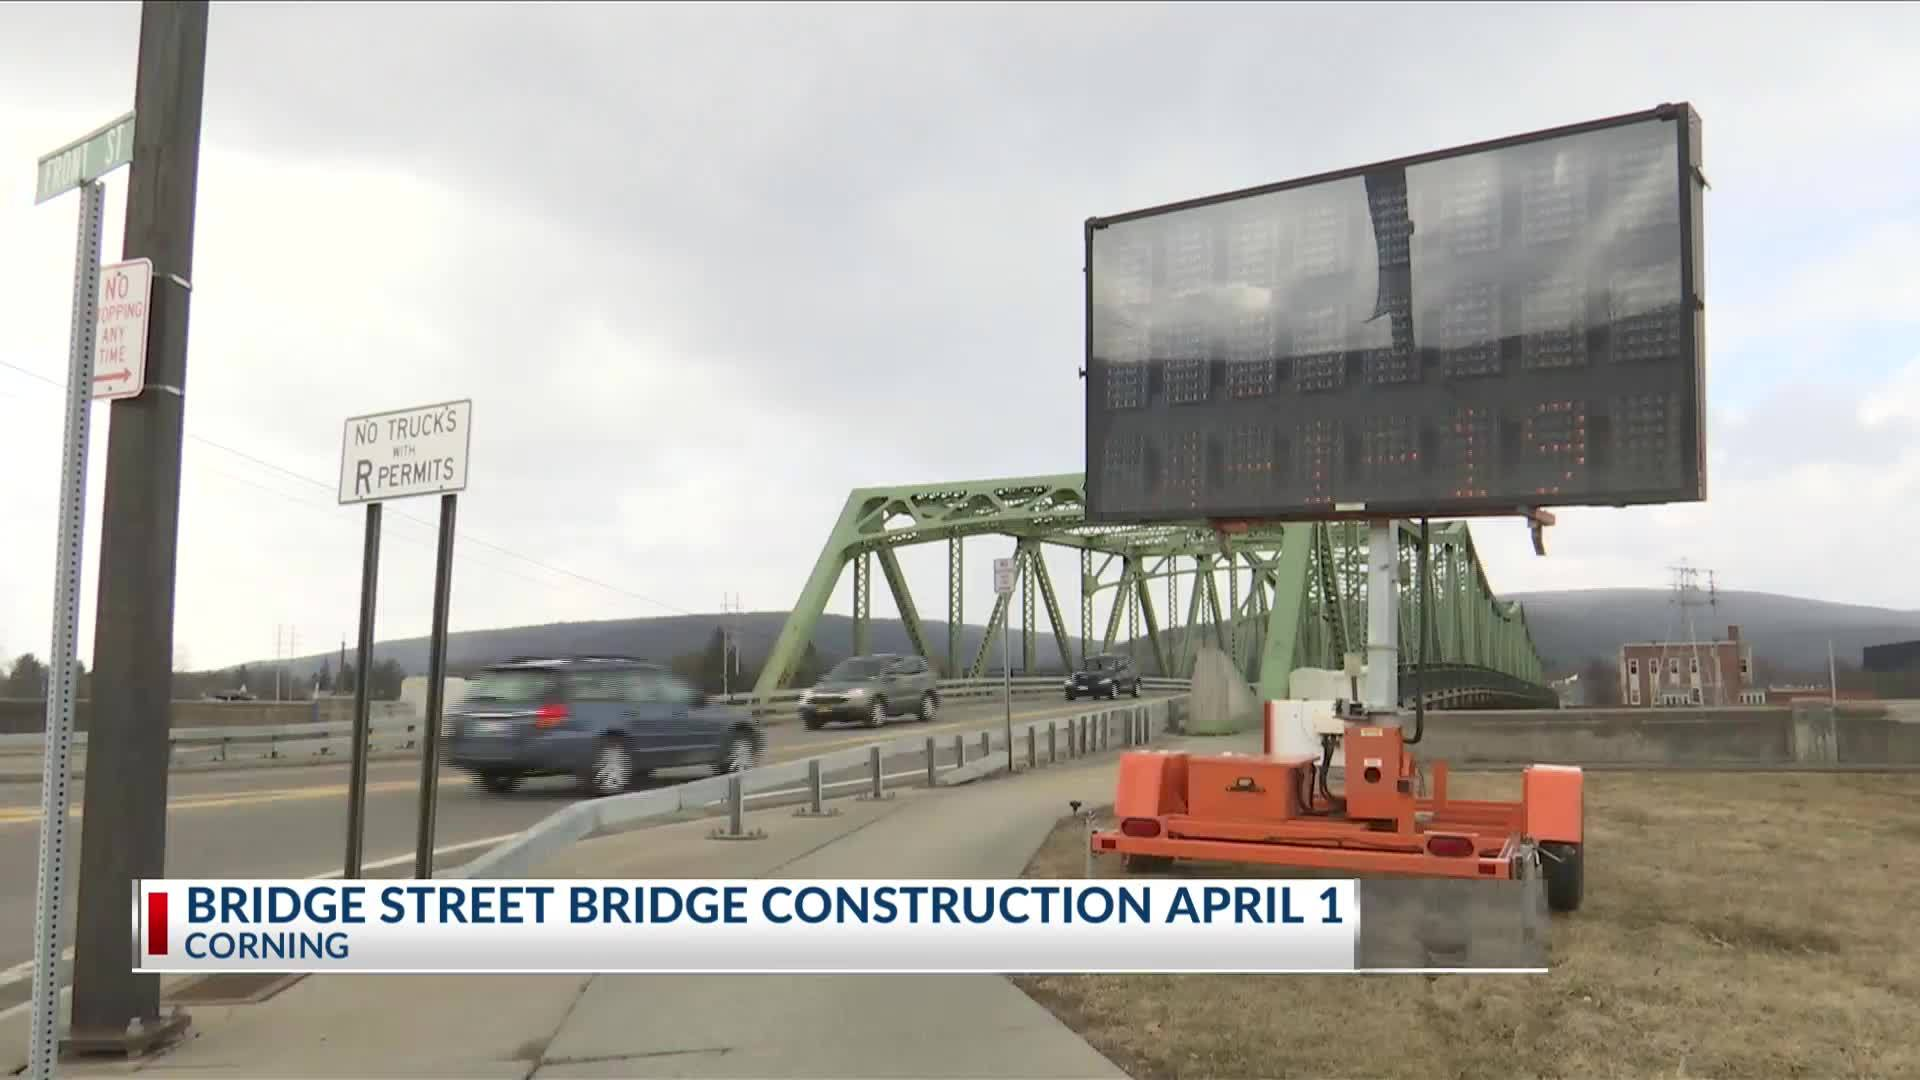 Bridge_Street_Bridge_renovations_to_begi_7_20190322221803